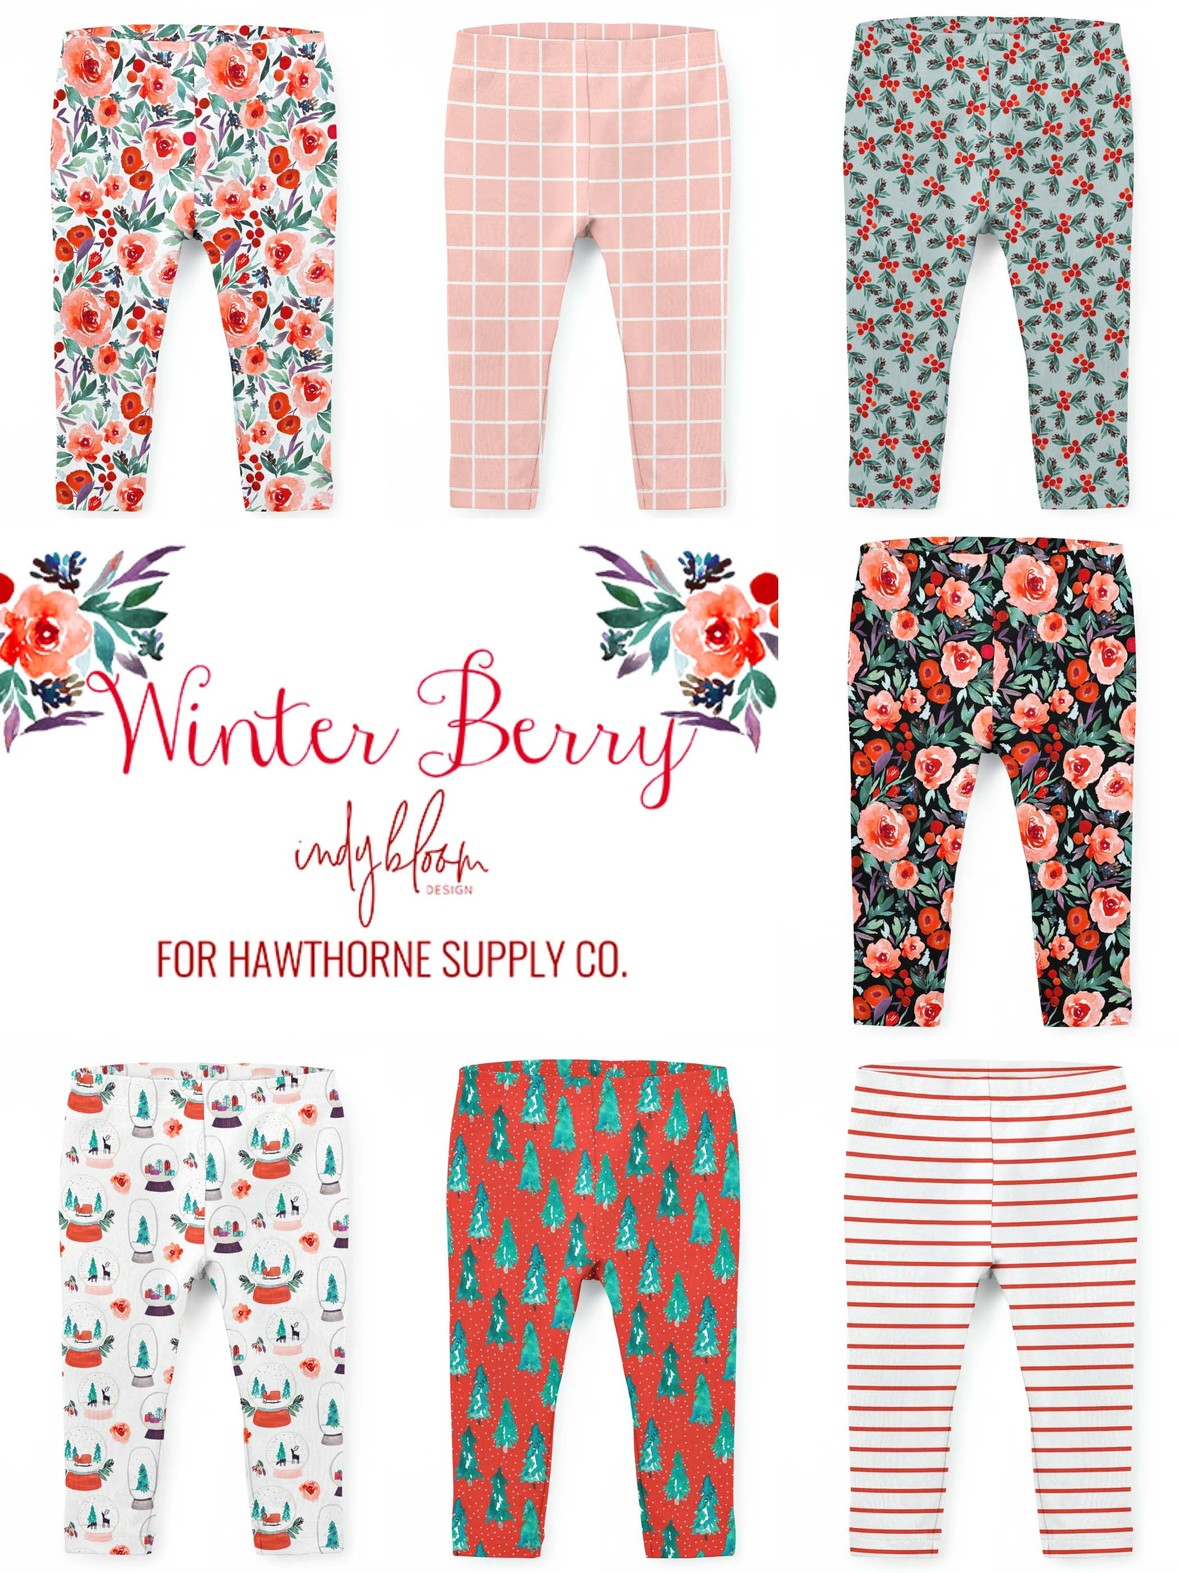 Winter Berries Baby Leggings Indy Bloom Knit at Hawthorne Supply Co